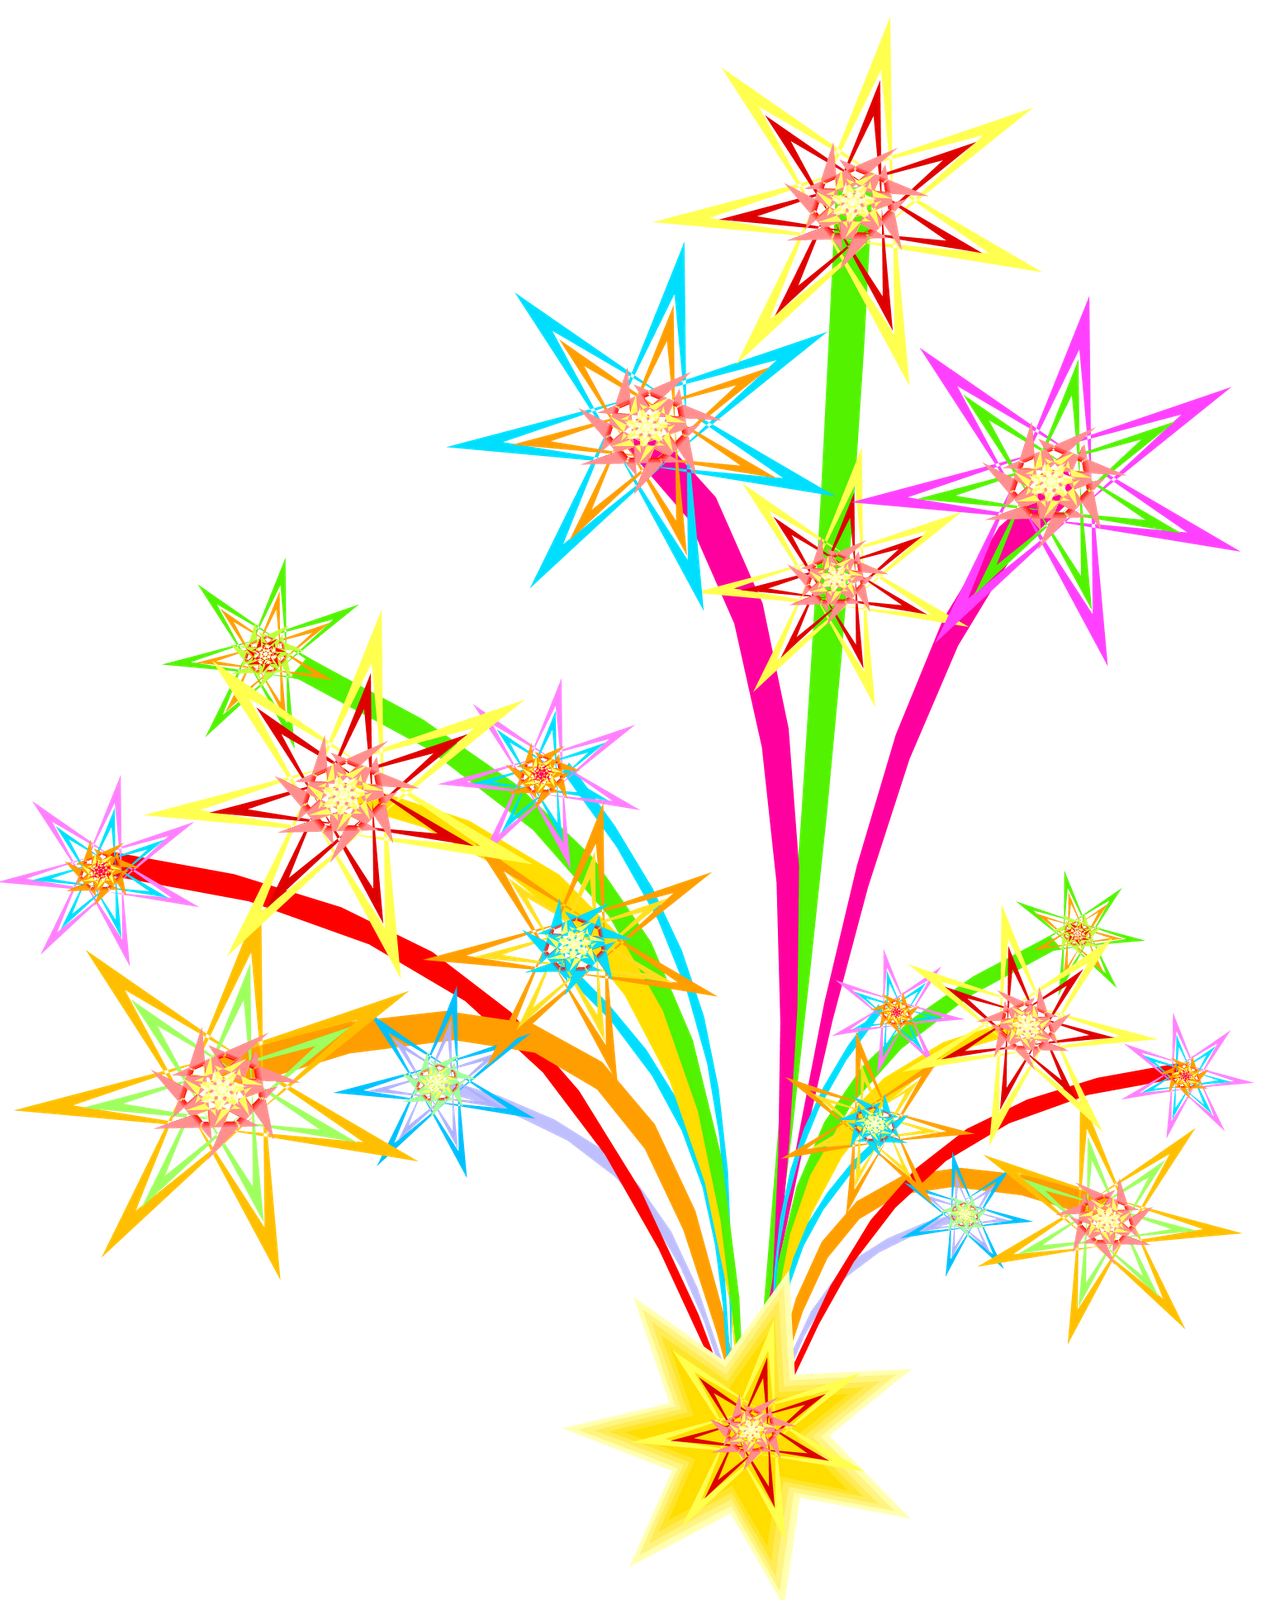 Diwali Crackers Png Diwali Crackers Clipart Png 4 Clipart Station